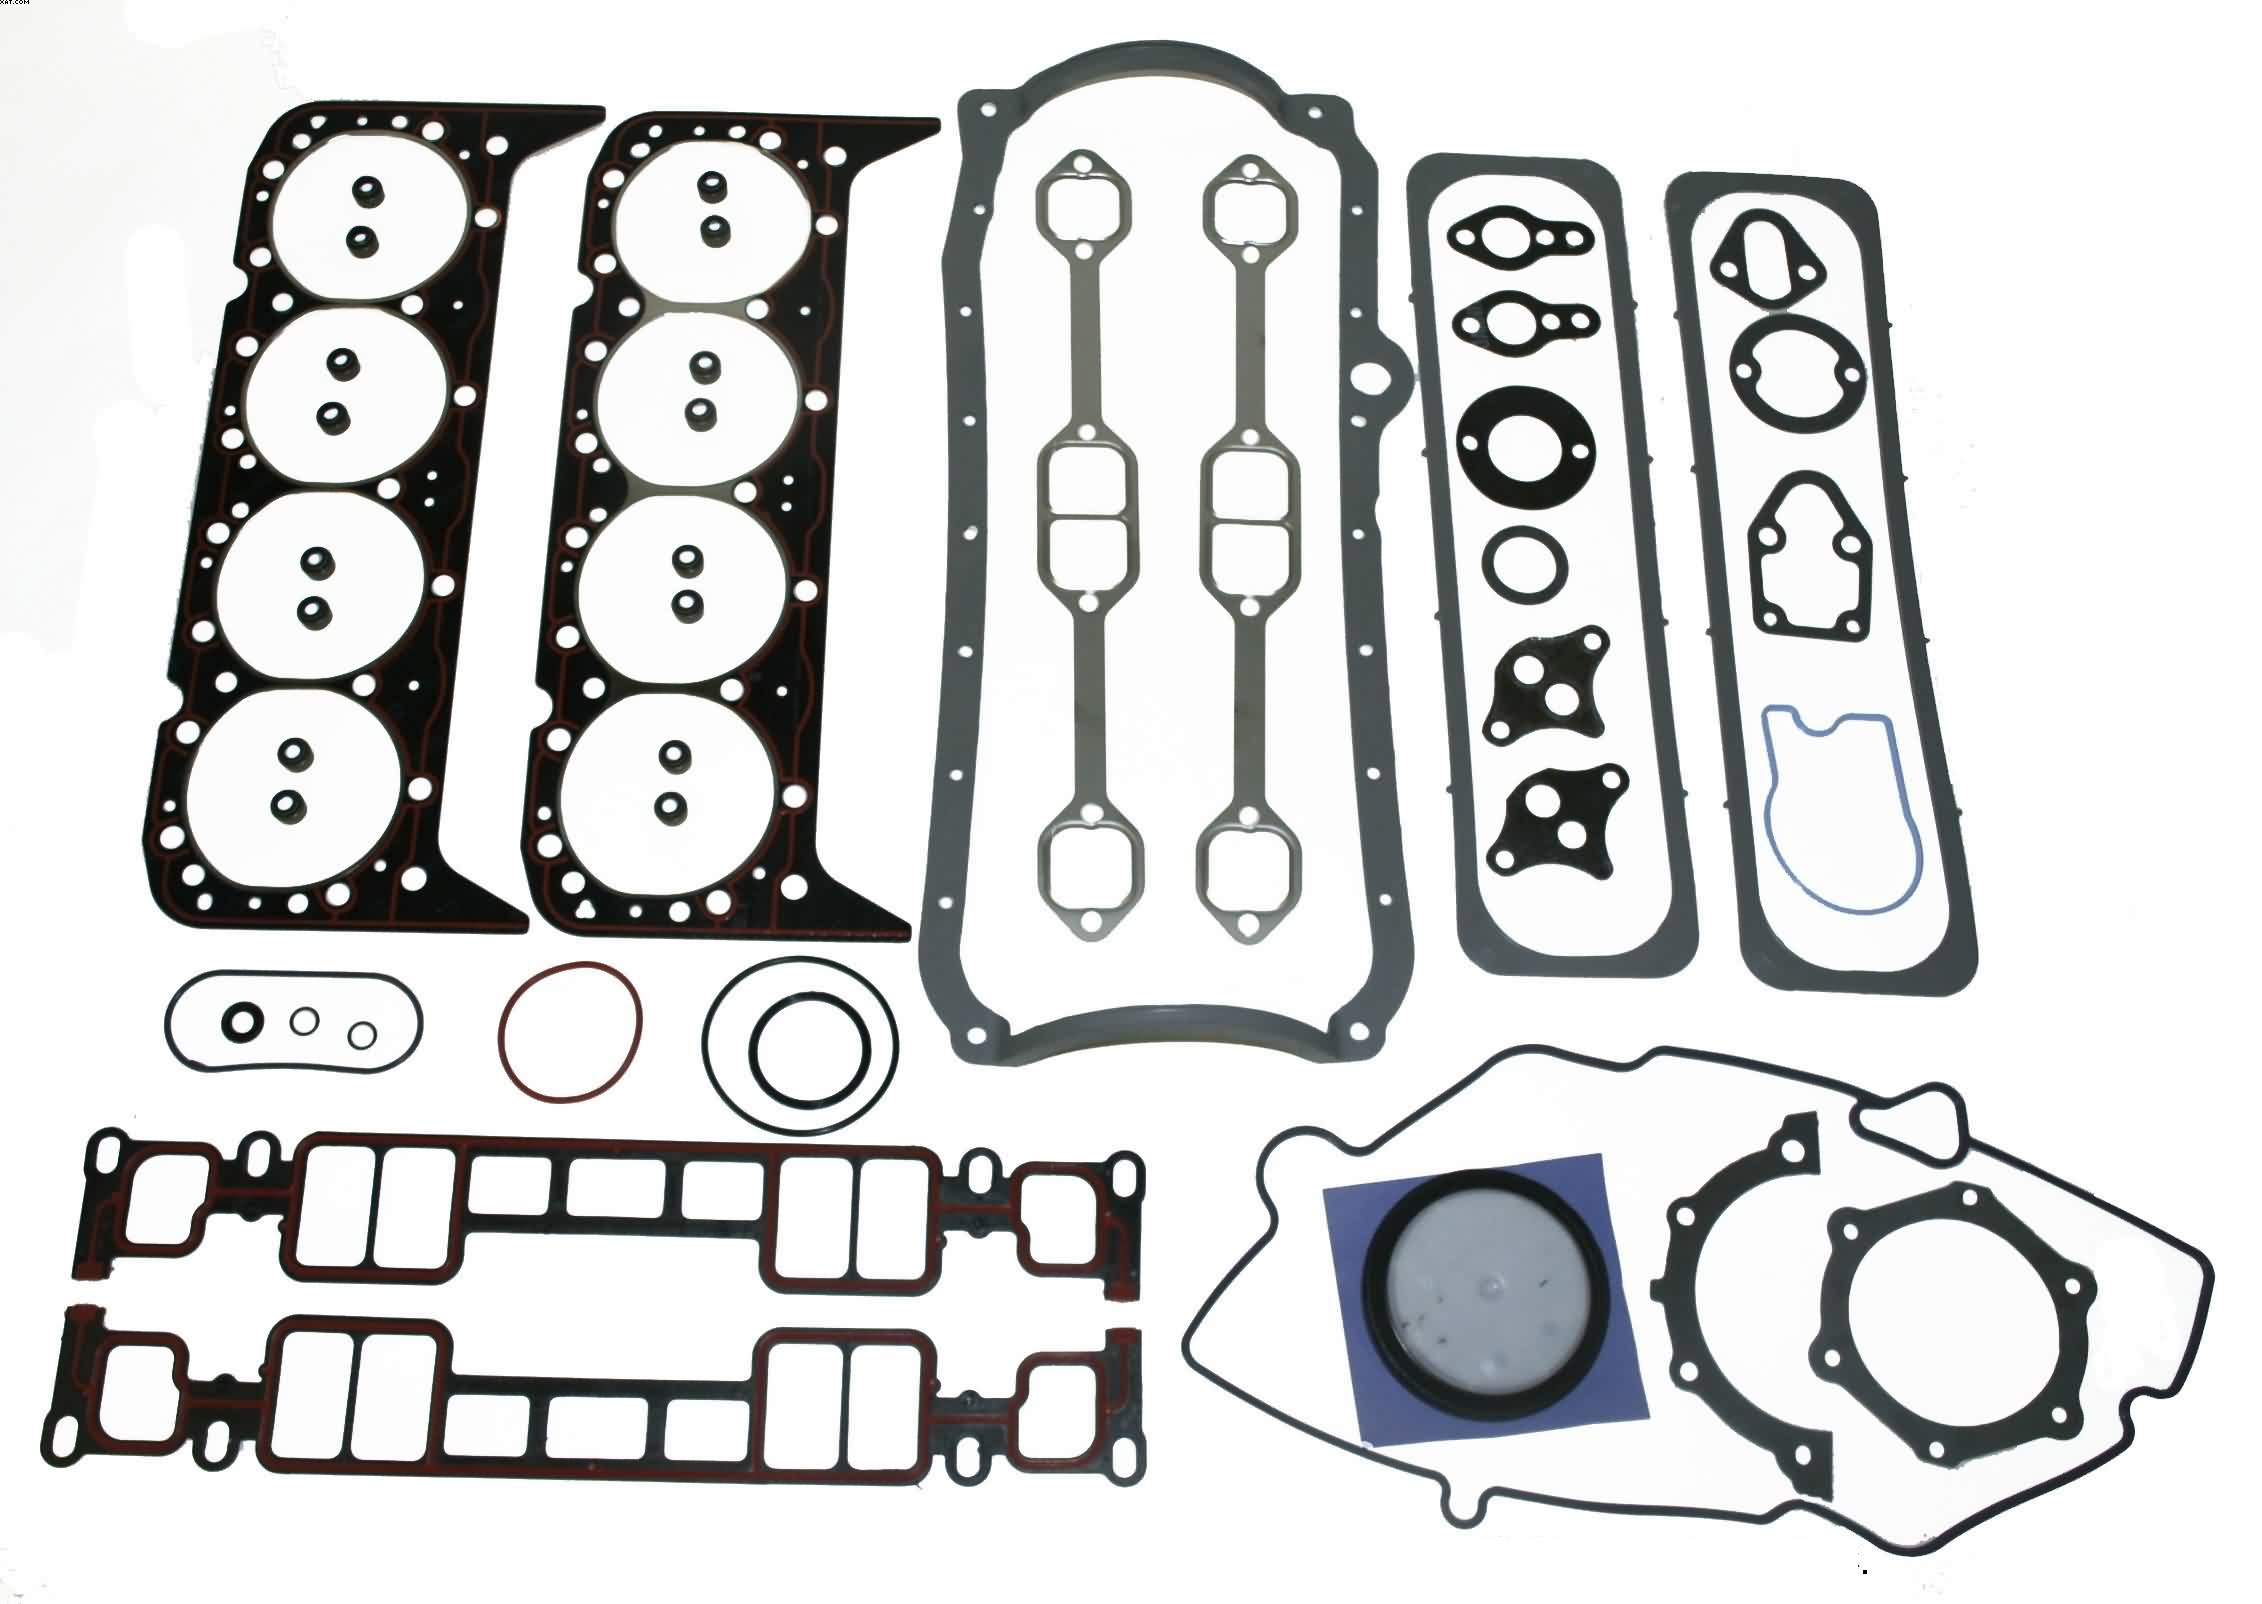 1988 Dodge 360 Engine Diagram furthermore 5l l 2002 Ram 1500 Set Initial Timing 5 9l Rebuilding Trans furthermore Engine Diagram For 2004 Chrysler Sebring besides T9519579 Need diagram furthermore 473z0 Dodge Intrepid Replace Timing Chain 2002. on 2002 dodge 4 7 timing marks